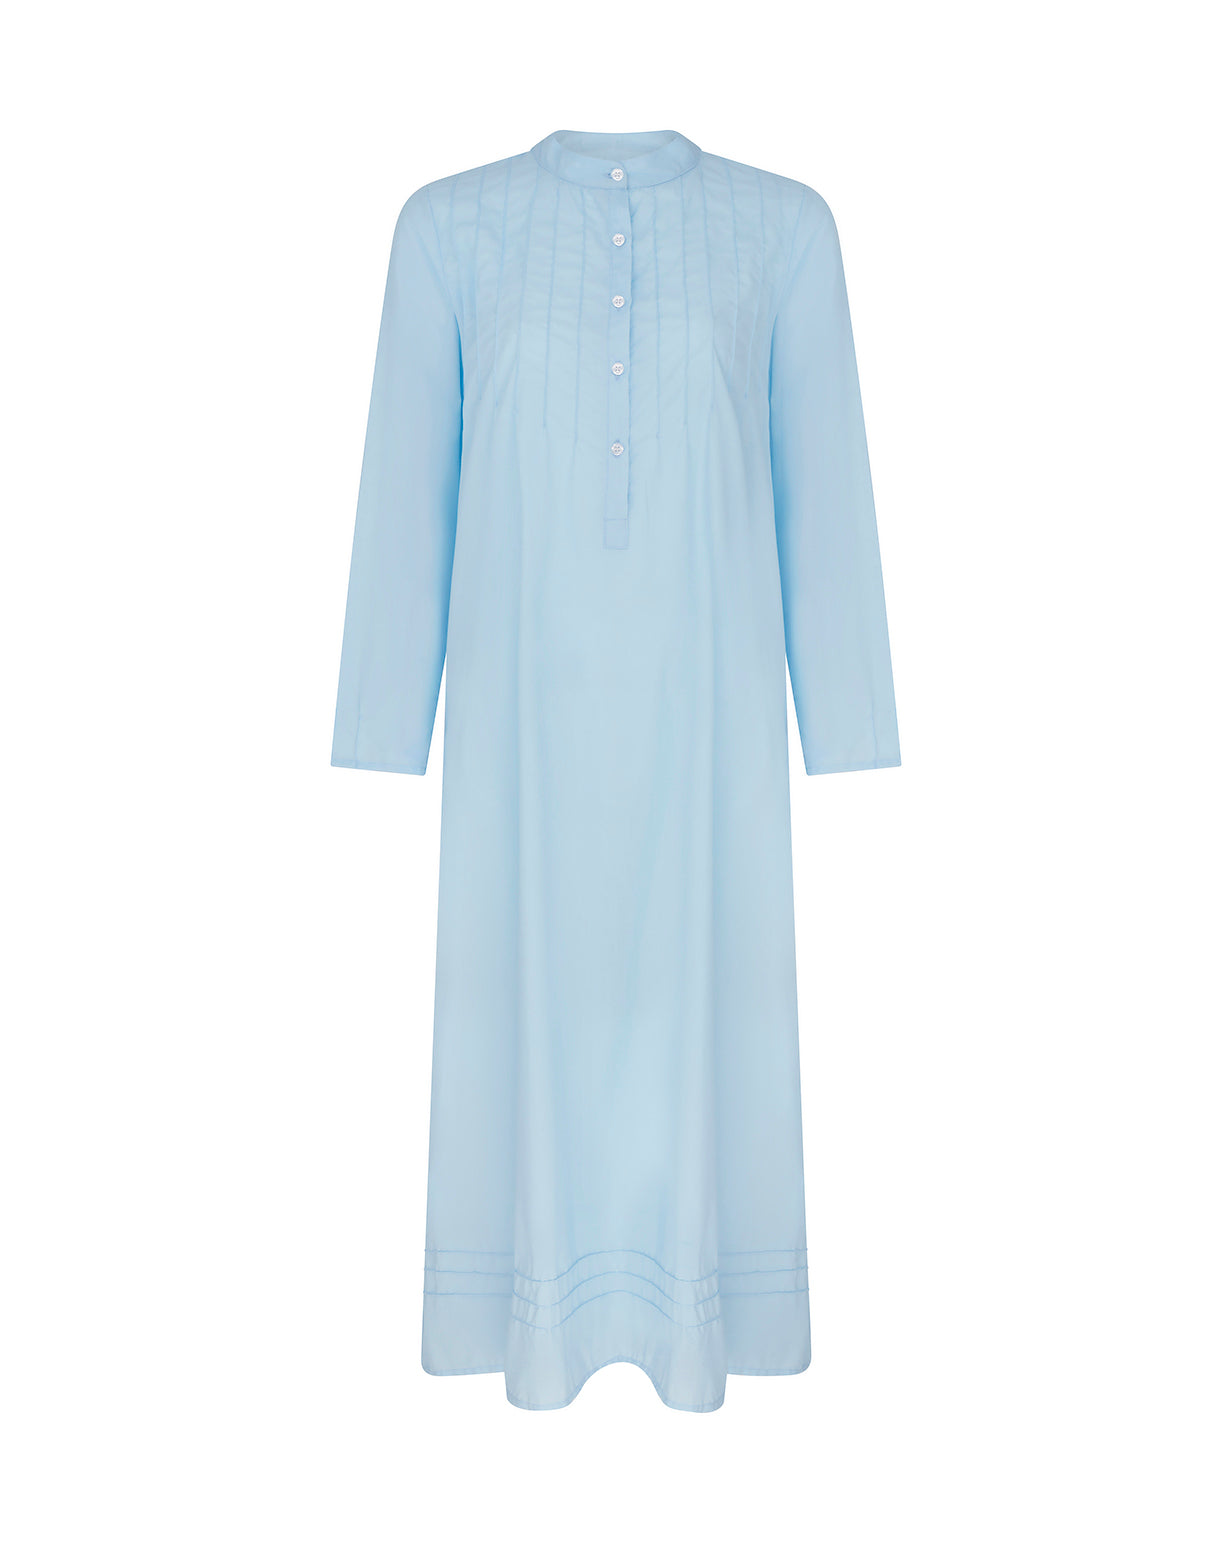 Women's Victoria Long Sleeve Cotton Nightdress – Blue